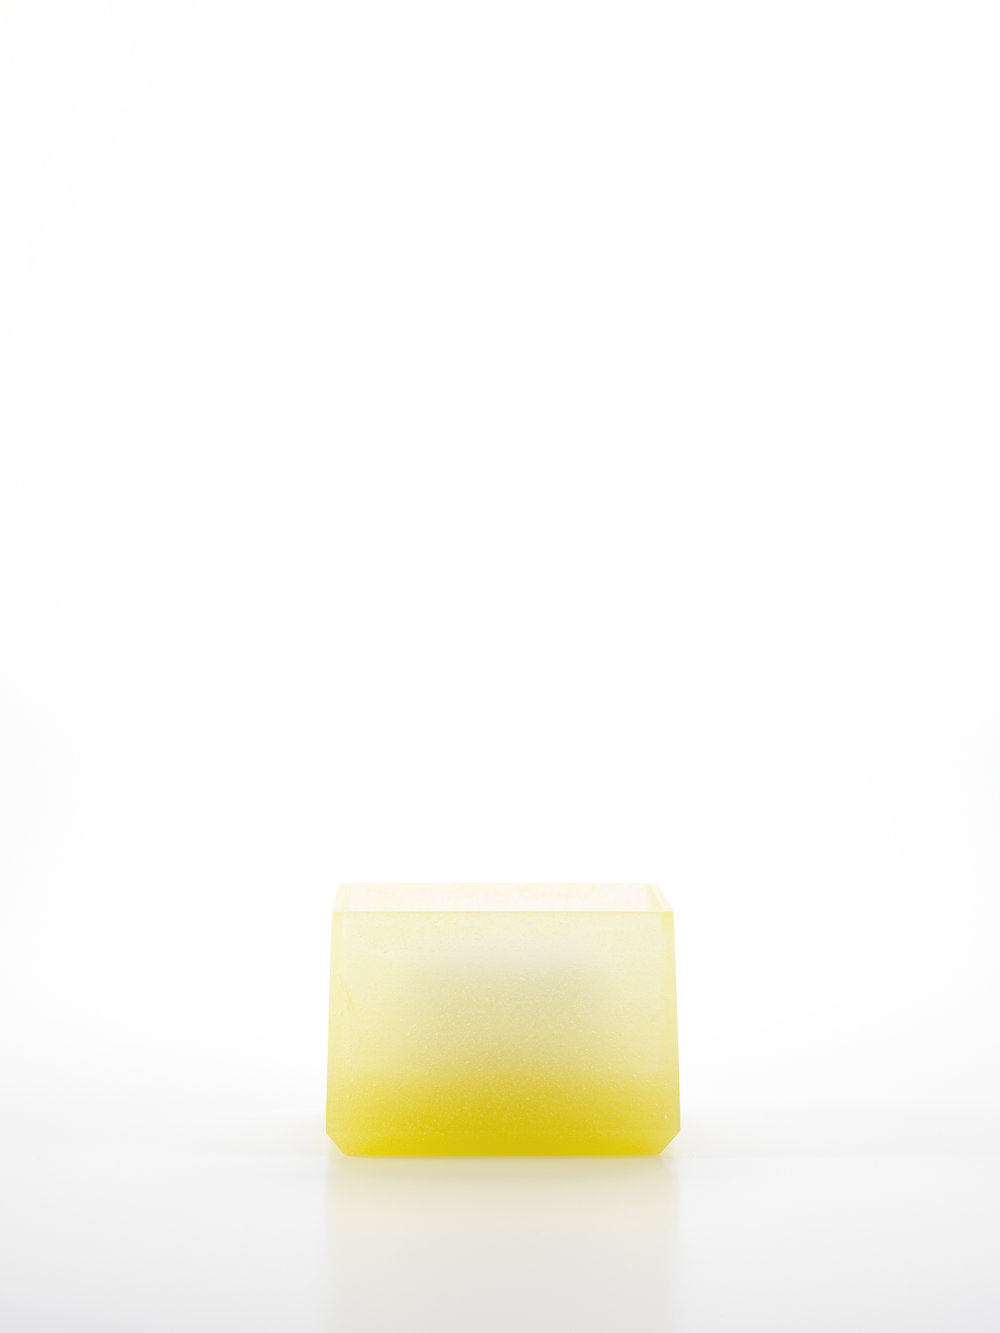 Andrea Walsh   Contained Box  Yellow Frit Glass and Fine Bone China 6.5cm x 10.25 x 7.5cm Photo: Shannon Tofts